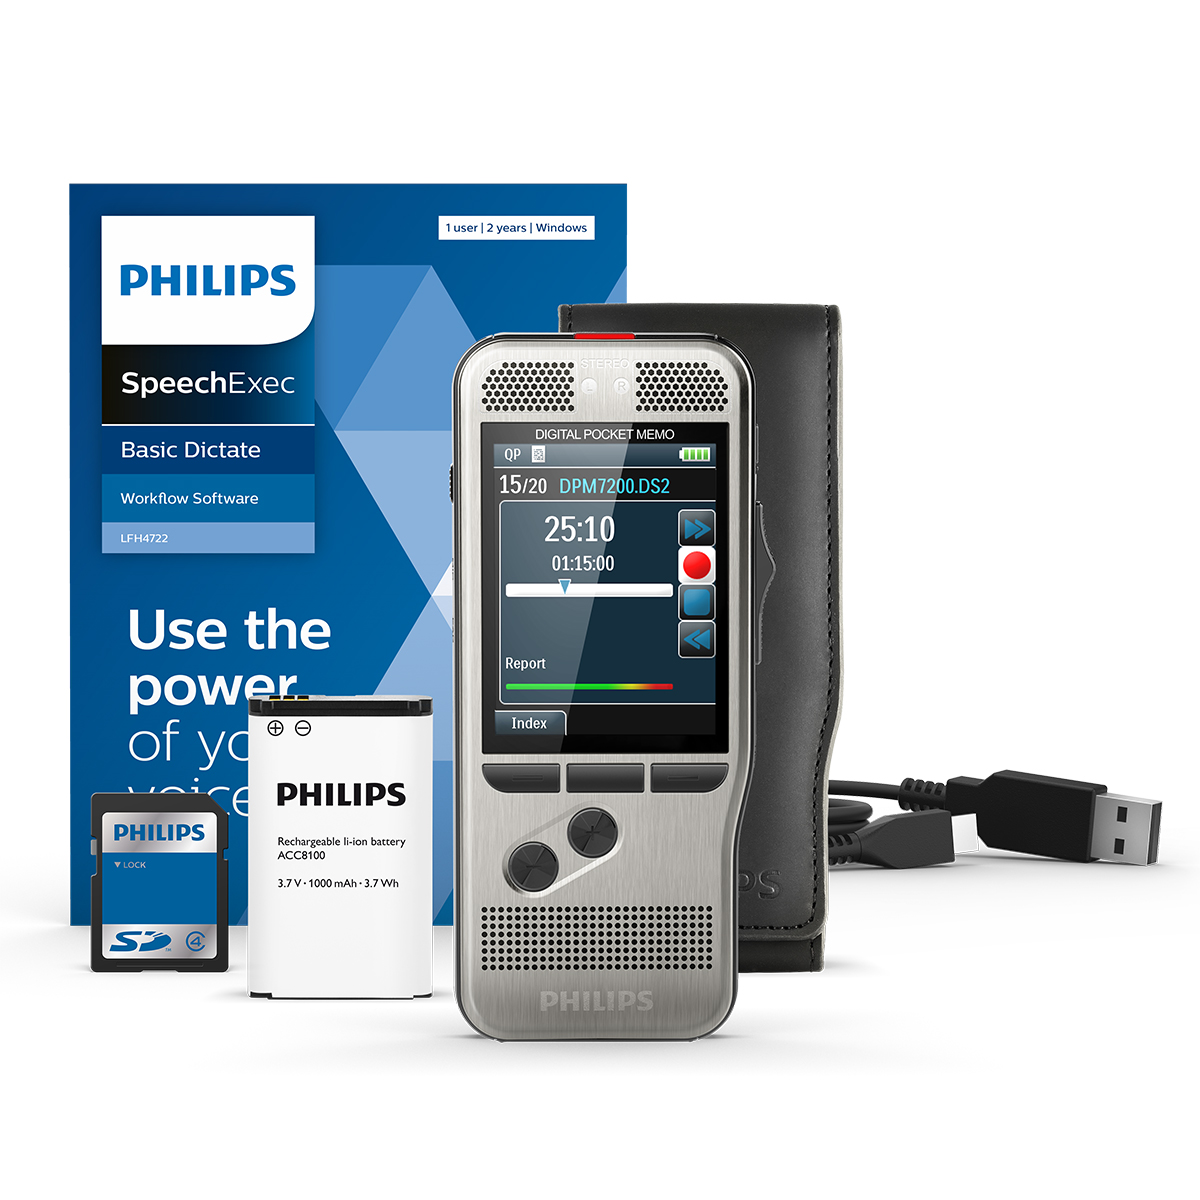 Philips DPM7200 Pocket Memo with SpeechExec Dictate 11